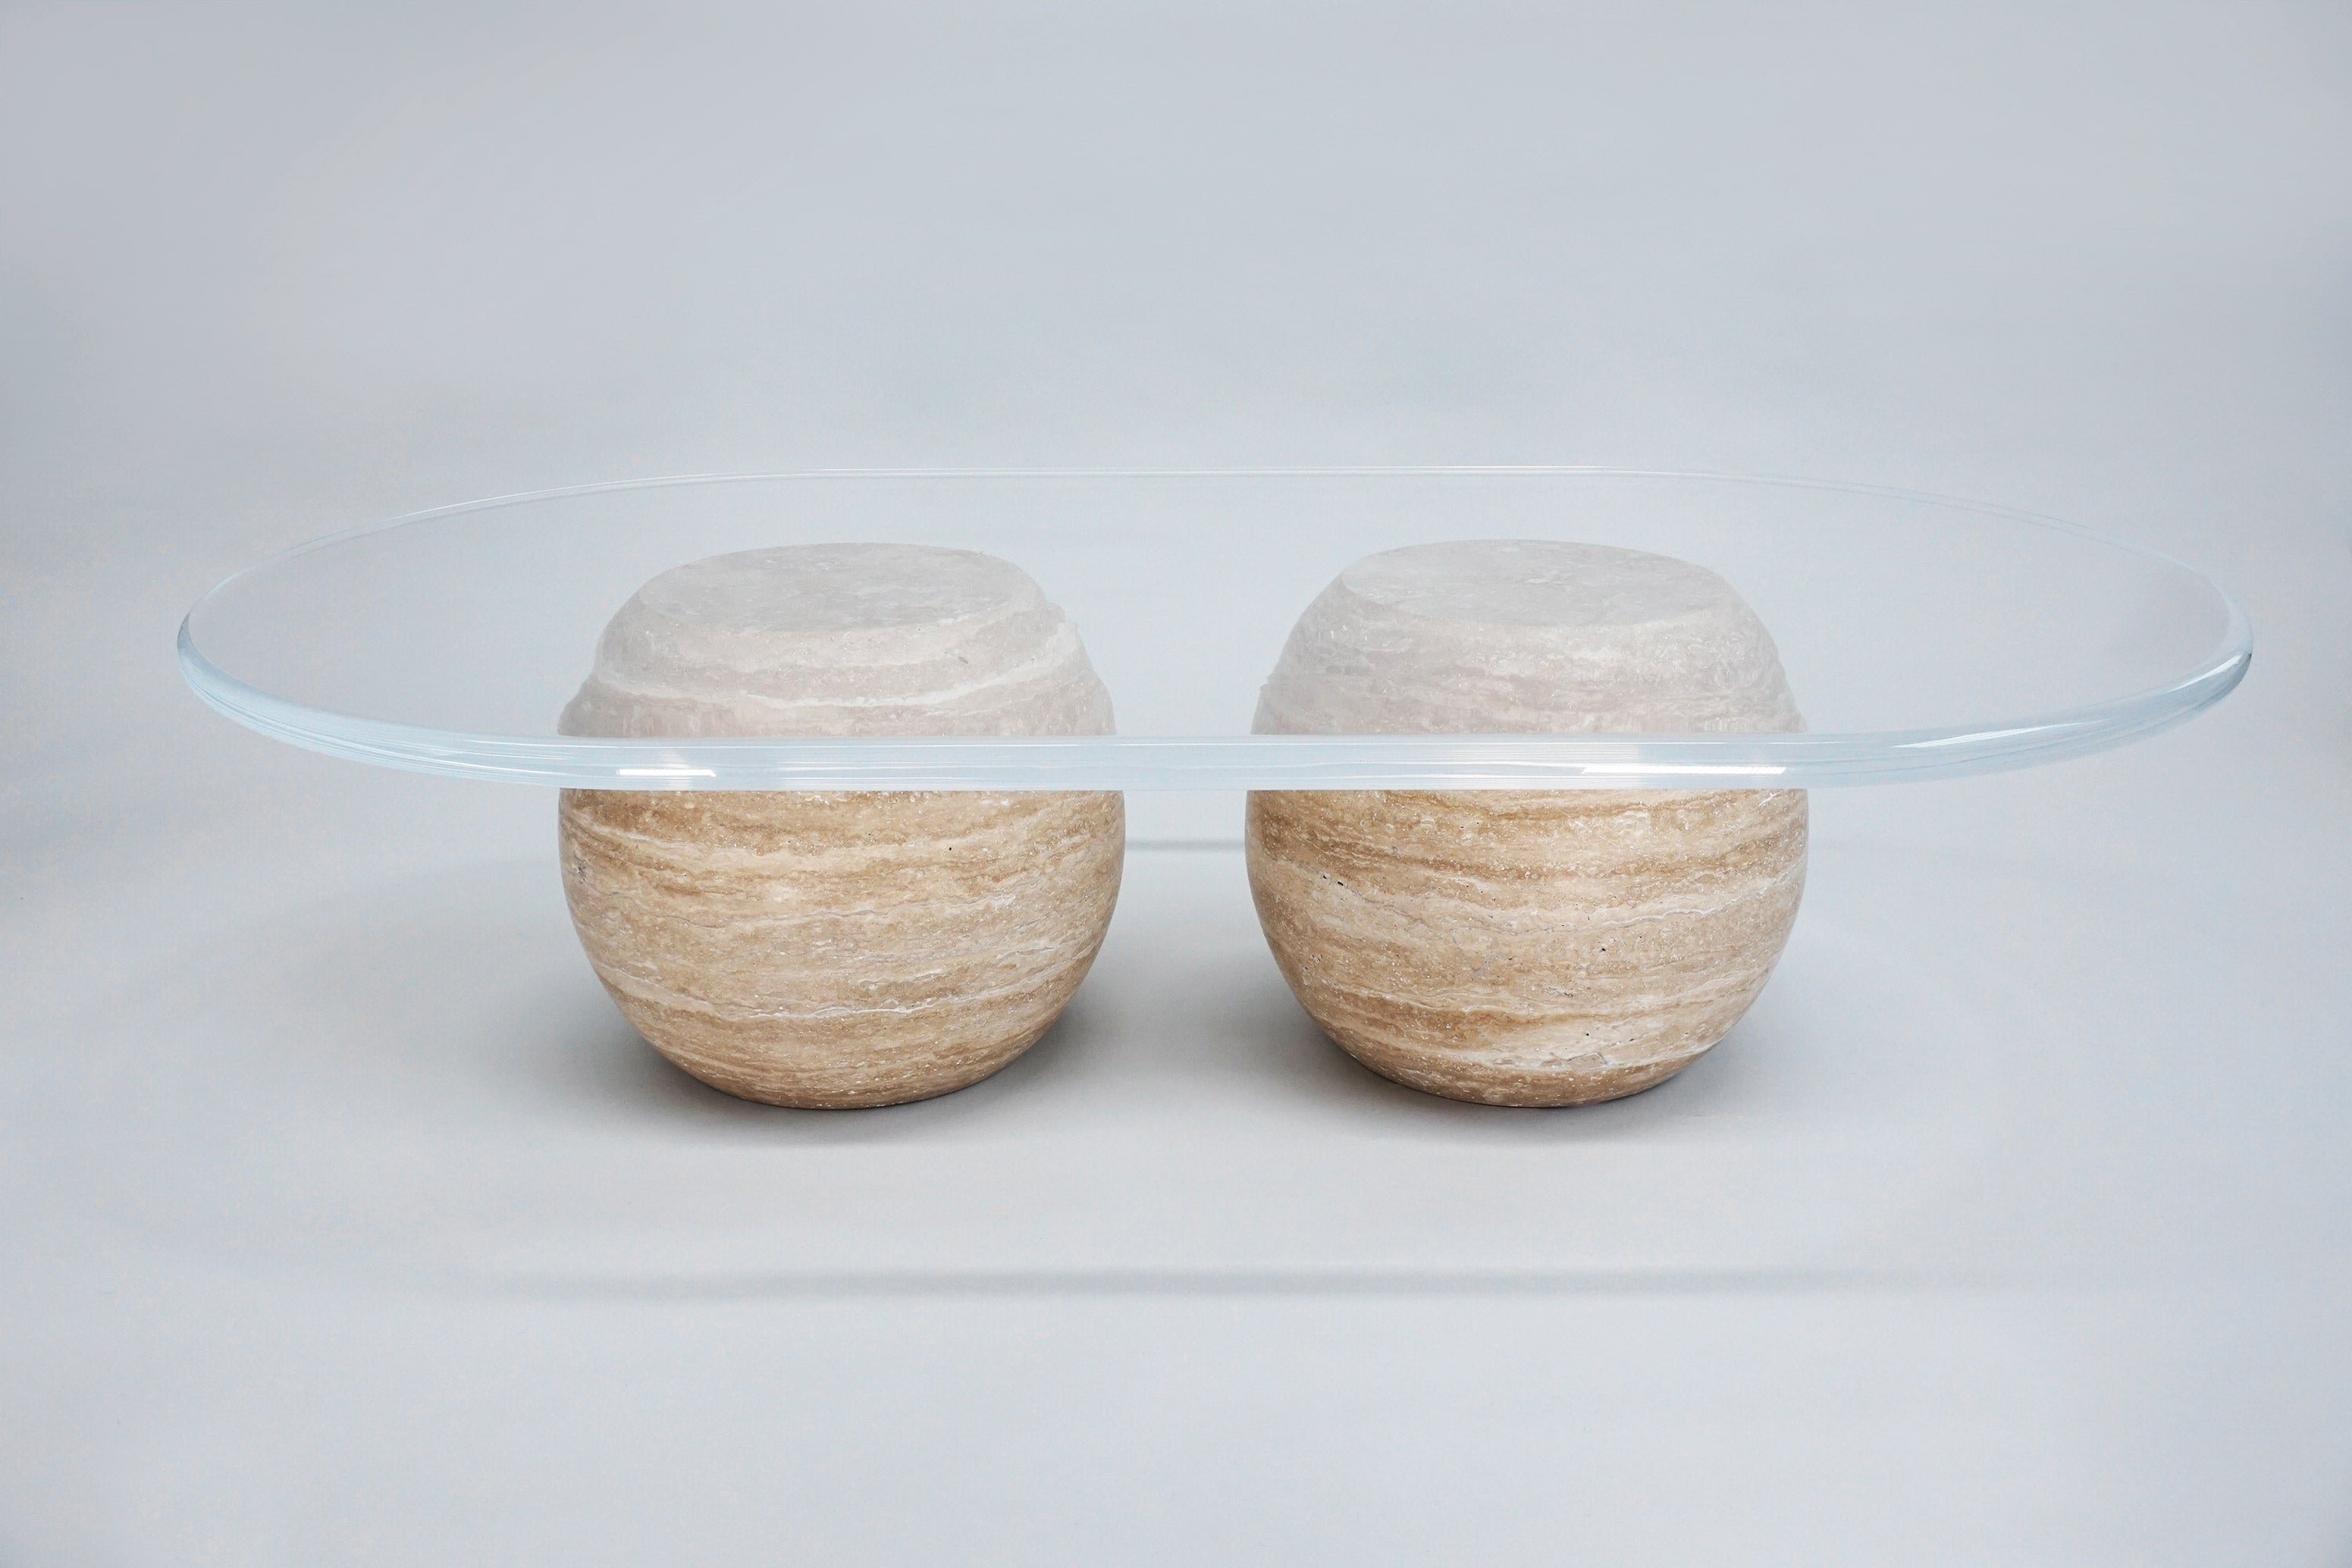 Le Ciel Coffee Table. A beautiful contrast of engineered and organic texture, the solid carved spherical travertine base showcases the incredible layered textures and tones of the organic stone.  The thick lucite tabletop offers a sense of weightlessness as the rounded edge creates an orbiting rim around the planetary nature of the design.